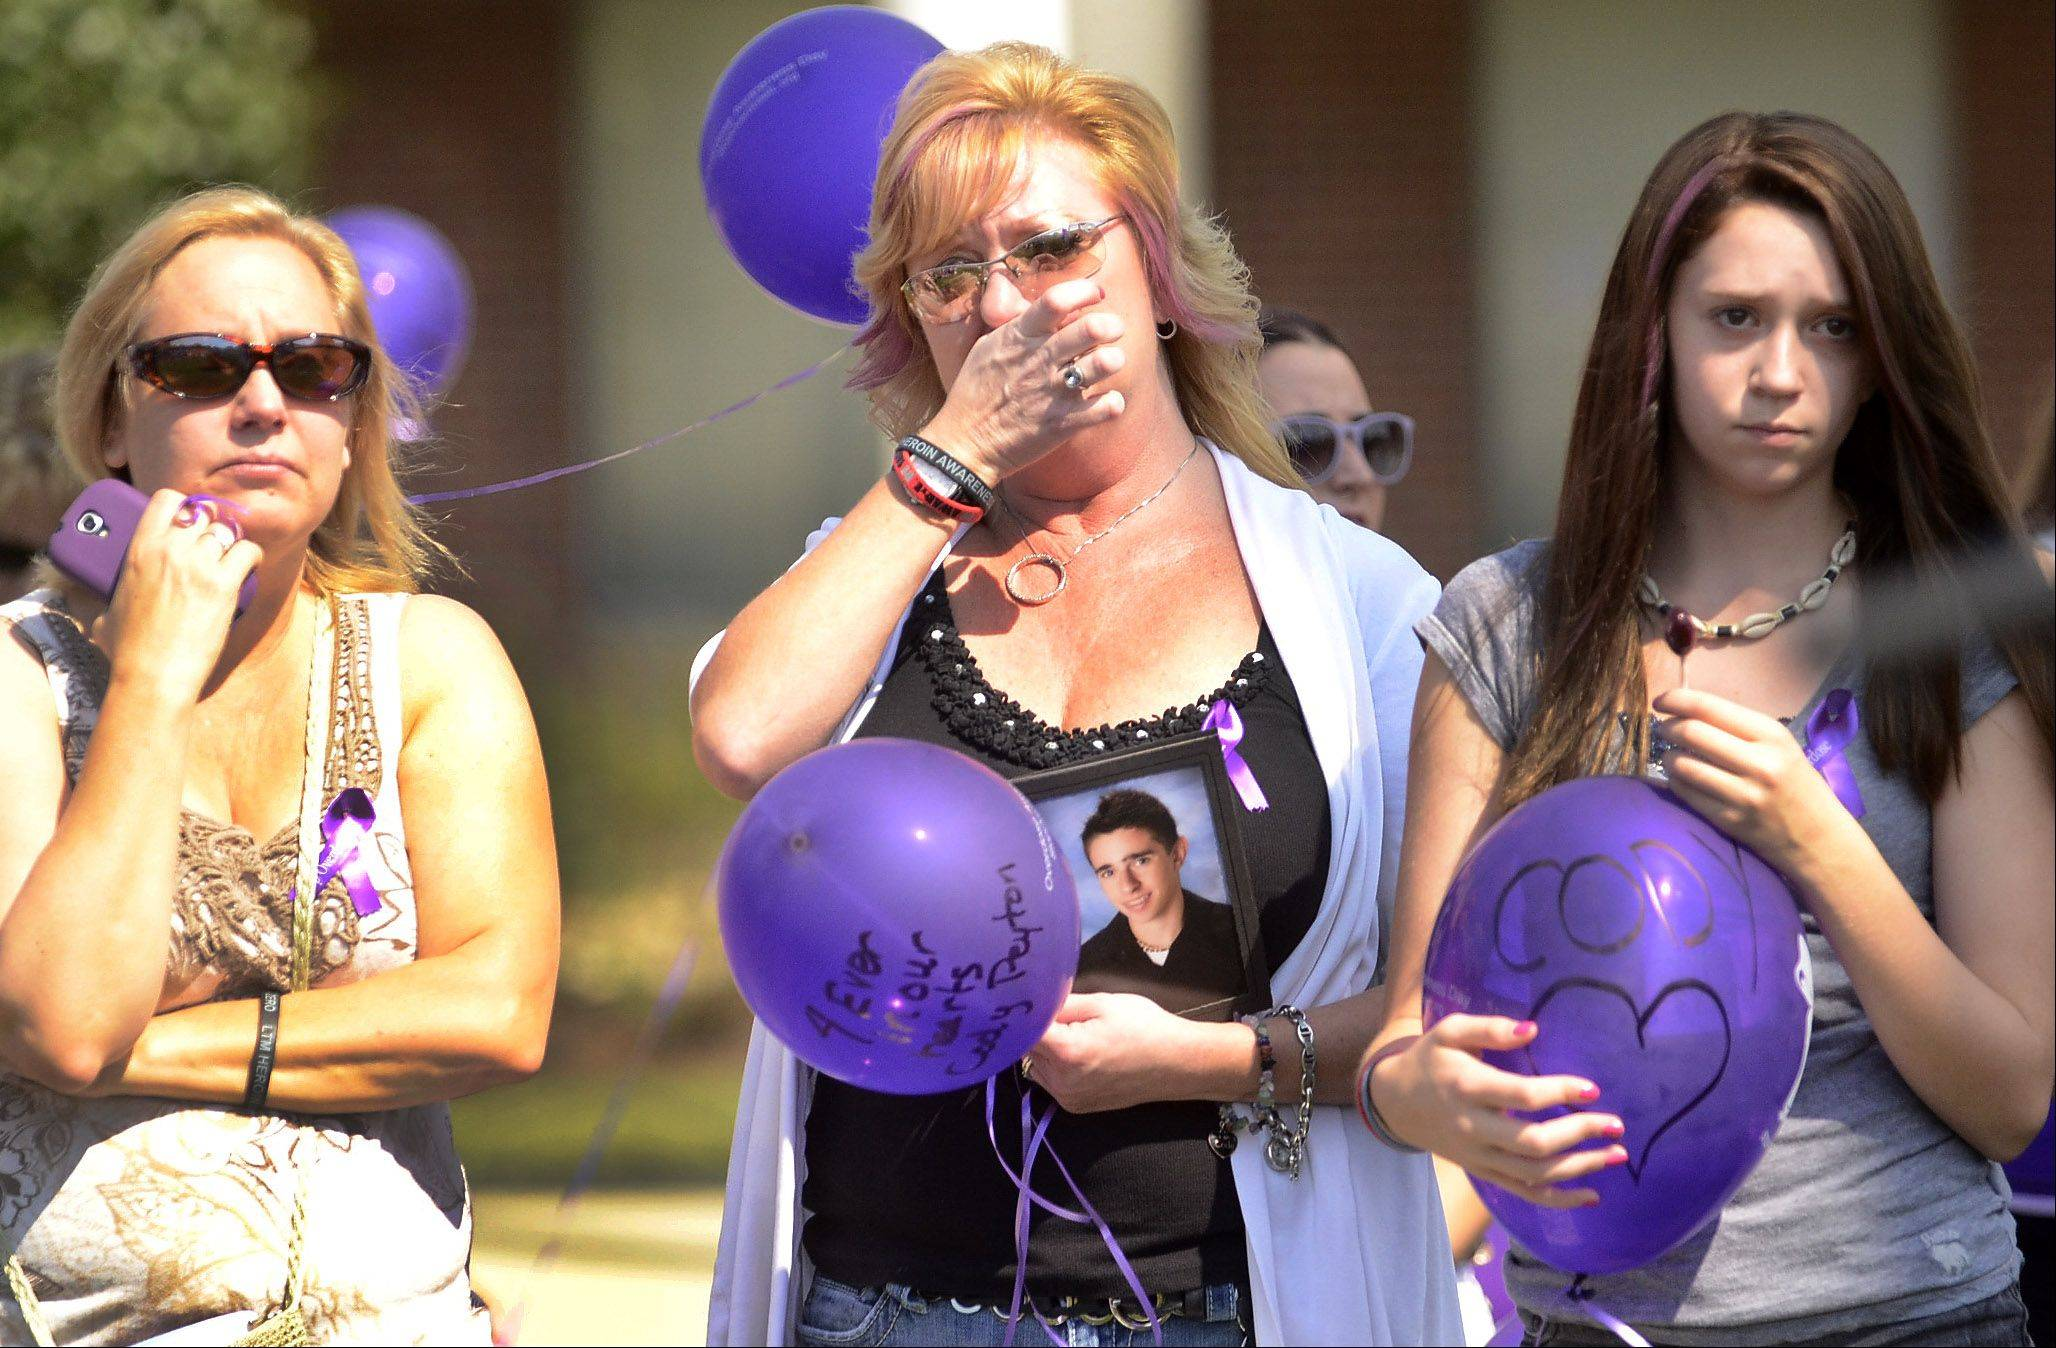 Robbie Heller of Aurora, from left, Kathy Cada of Batavia and Jillian Peyton of Batavia remember Kathy's son Cody, who died last year at age 20 of an overdose.